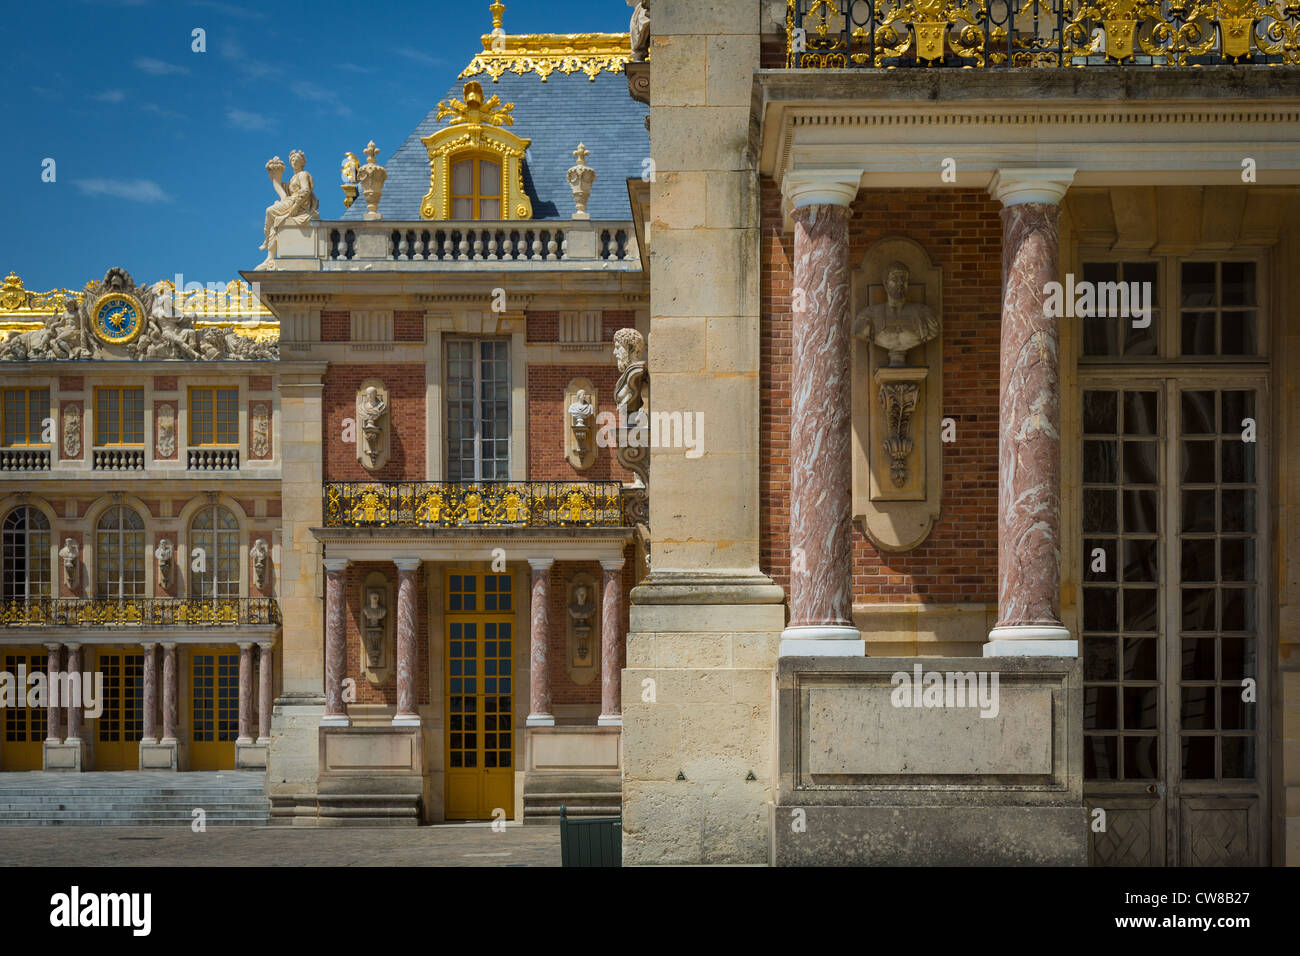 Architectural details at the Versailles royal palace outside Paris, France - Stock Image